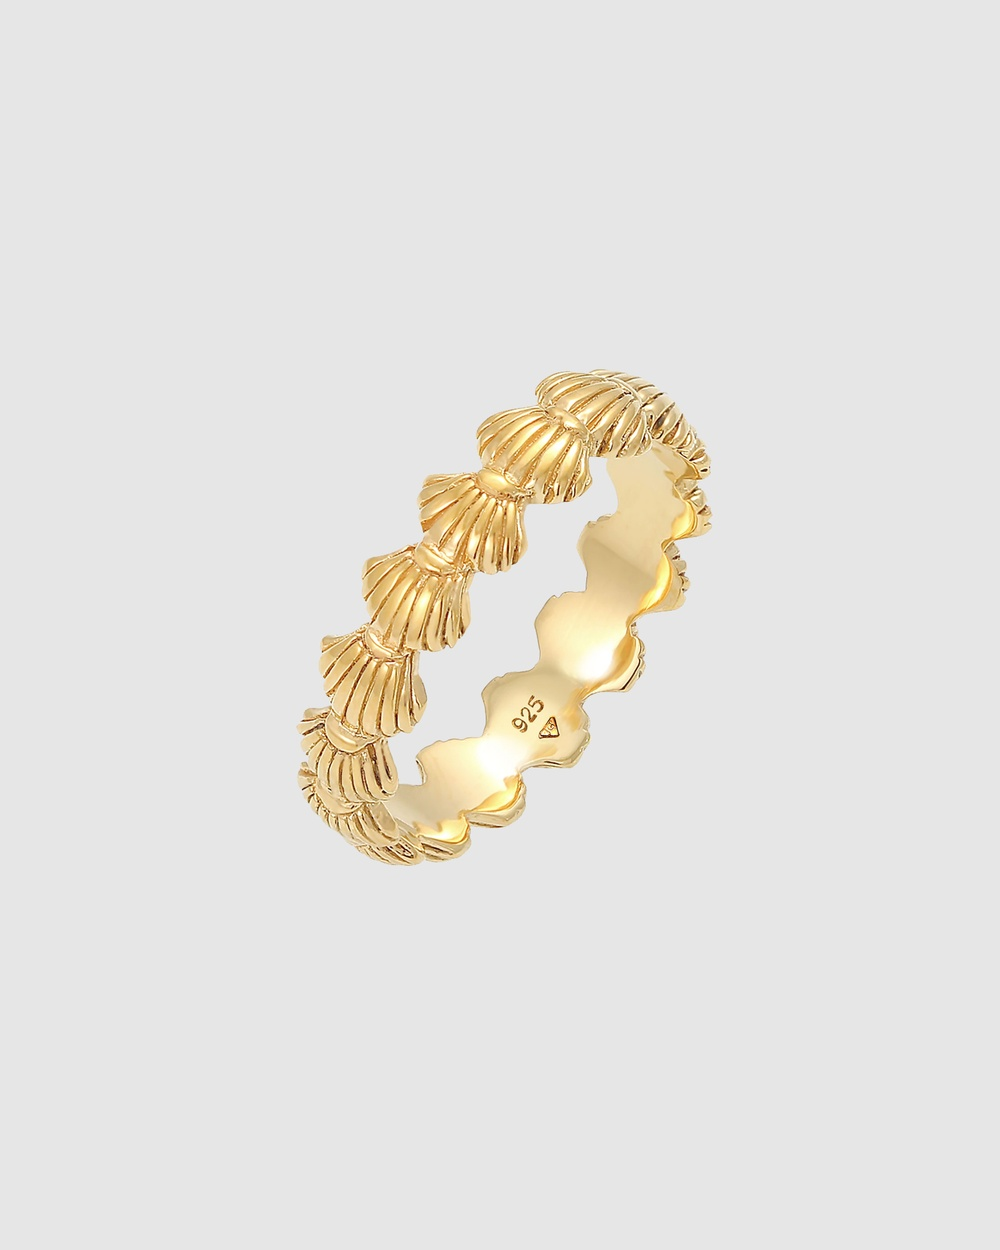 Elli Jewelry Ring Shells Maritime Beach Look Summer in 925 Sterling Silver Gold Plated Jewellery Gold